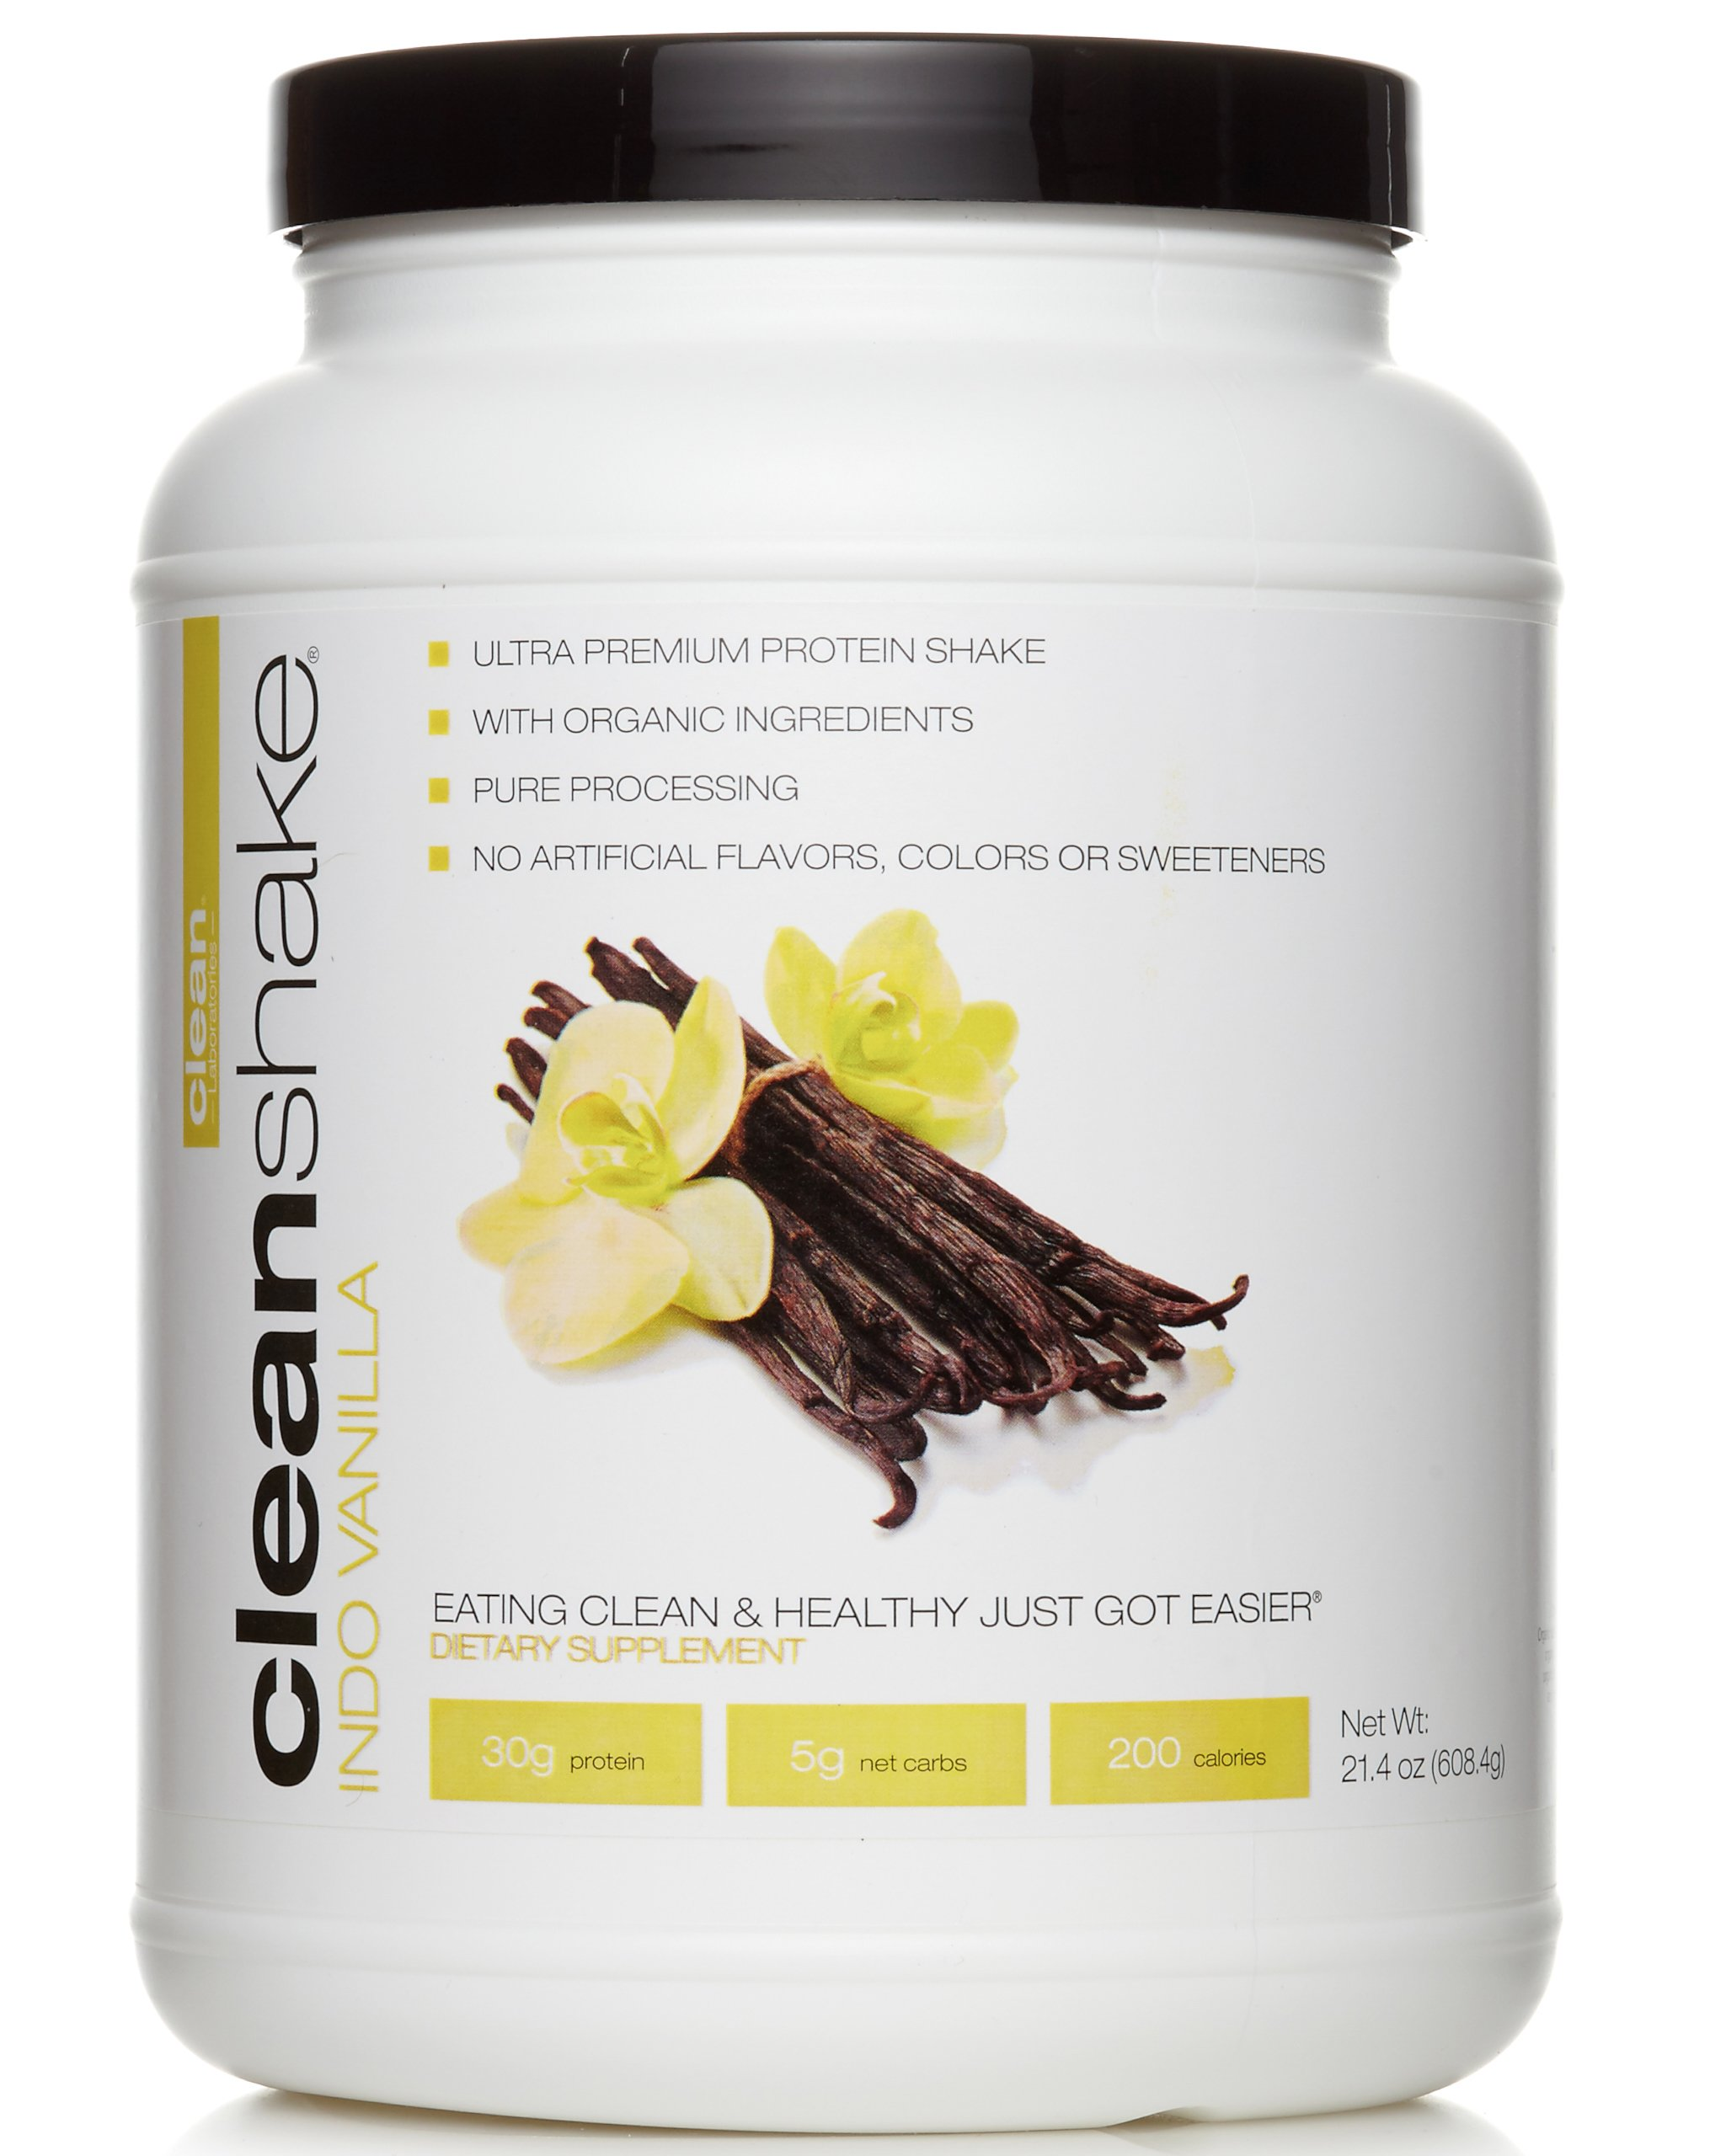 Cleanshake Vanilla Protein Shake. Clean, No Artificial Flavors, Colors or Sweeteners. Made in the USA. by CleanShake Inc.